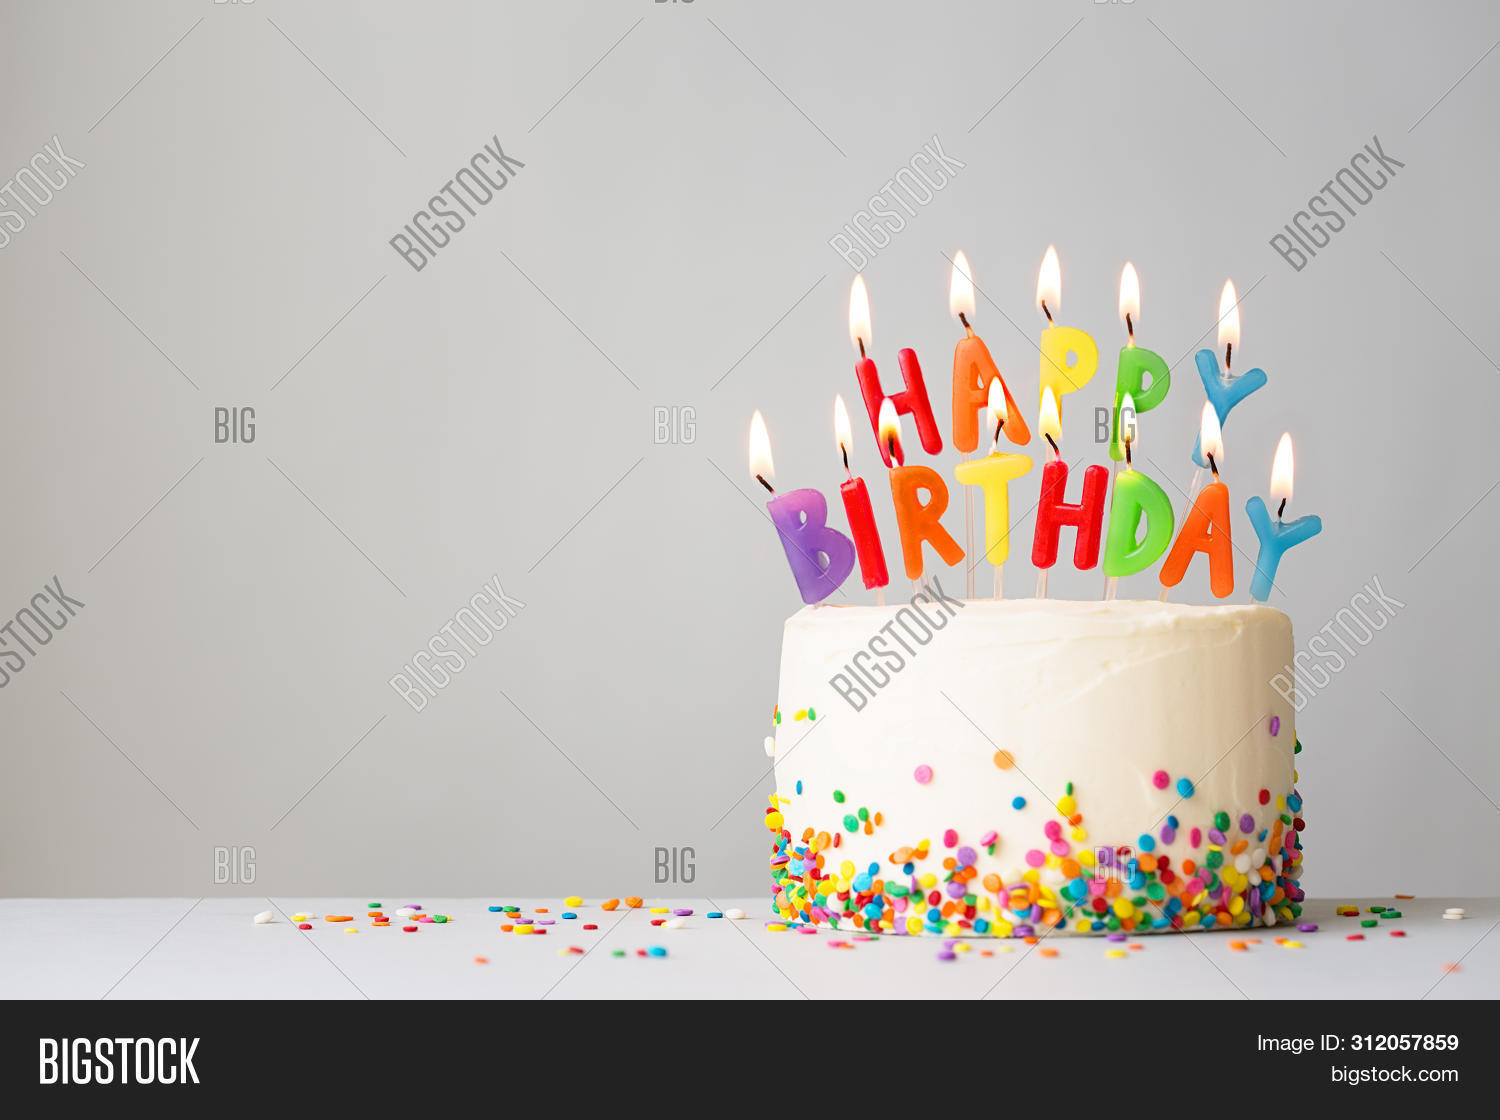 background,baked,birthday cake,birthday candles,birthday party,bright,brightly colored,cake,cakes,candle,candles,celebrate,celebration,colorful,copy space,copyspace,food,frosted,fun,gray,greeting,happy,happy birthday,home baked,home baking,home made,home-made,homemade,horizontal,letters,message,nobody,party,plain background,sprinkles,sweet,template,text,white,word,words,written